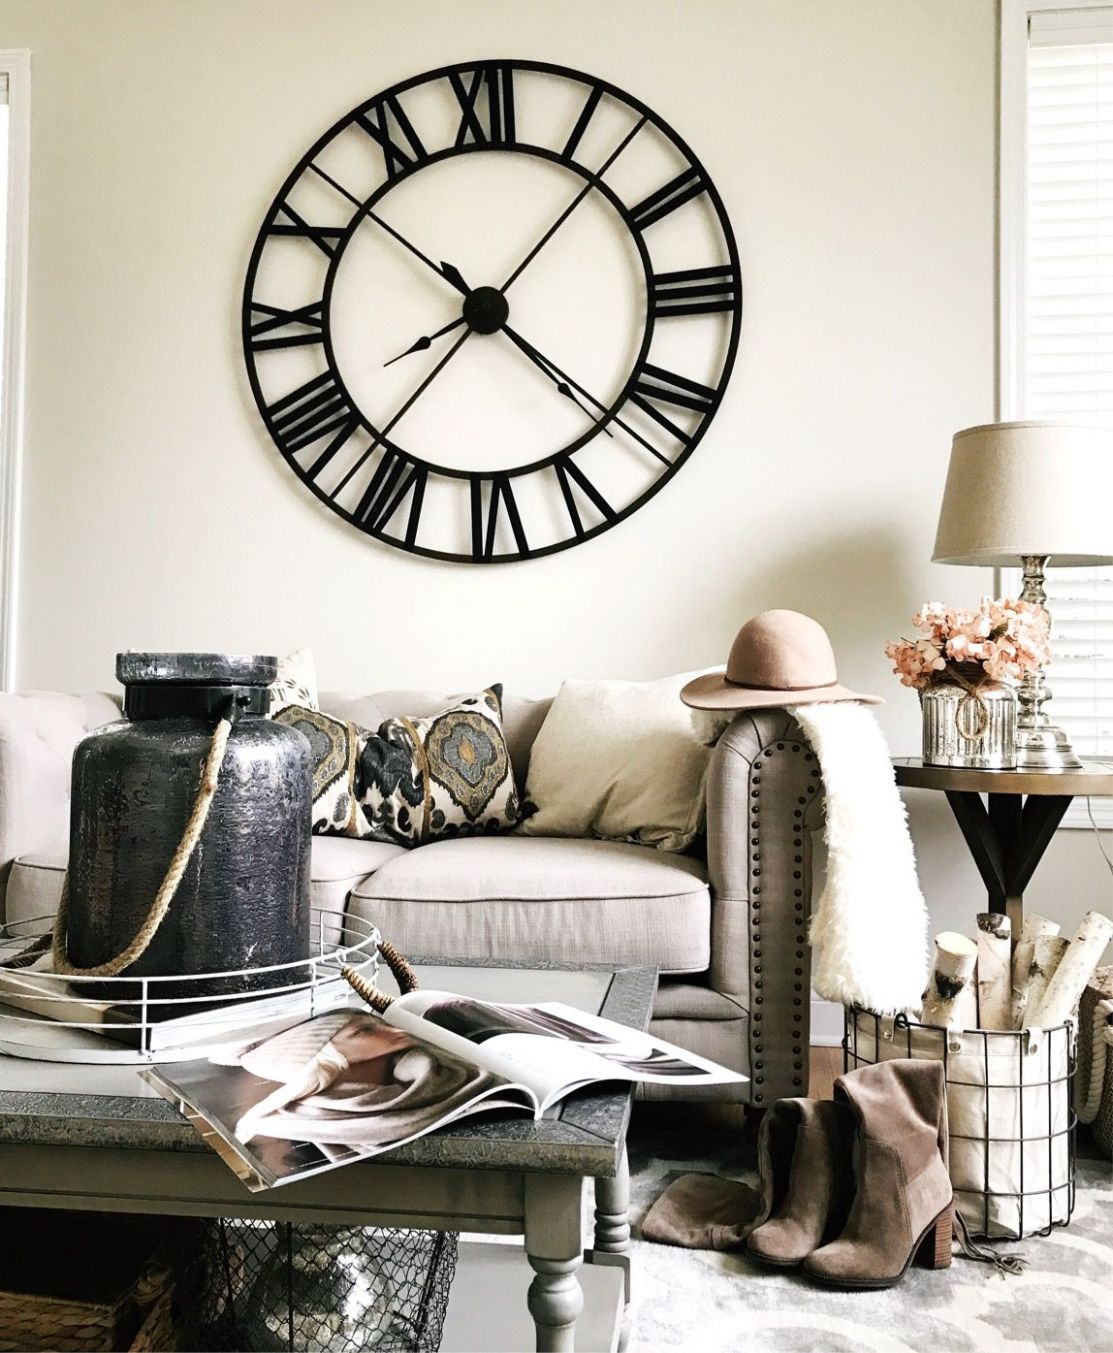 Rustic farmhouse decor . Living room decor ideas. Large wall clock ...